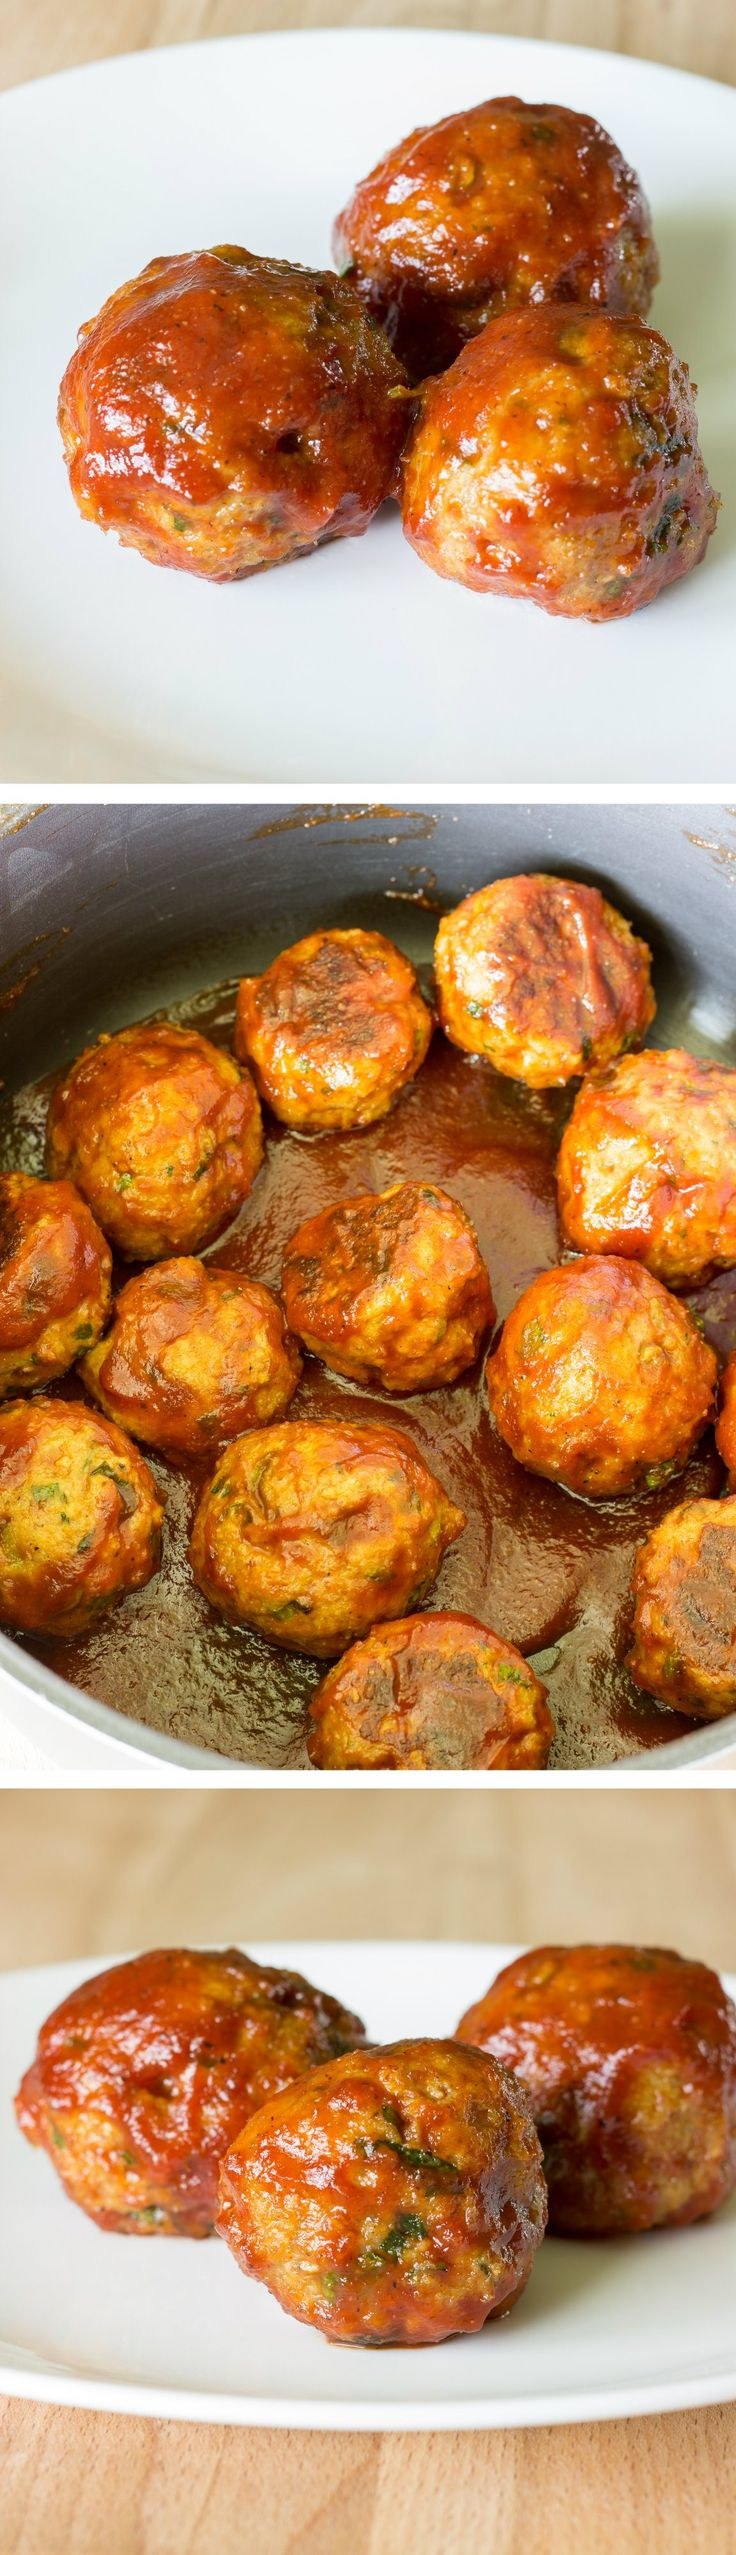 Honey Barbeque Chicken Meatballs ~ Flavorful chicken meatballs are baked, then simmered in a sweet & tangy homemade BBQ sauce.